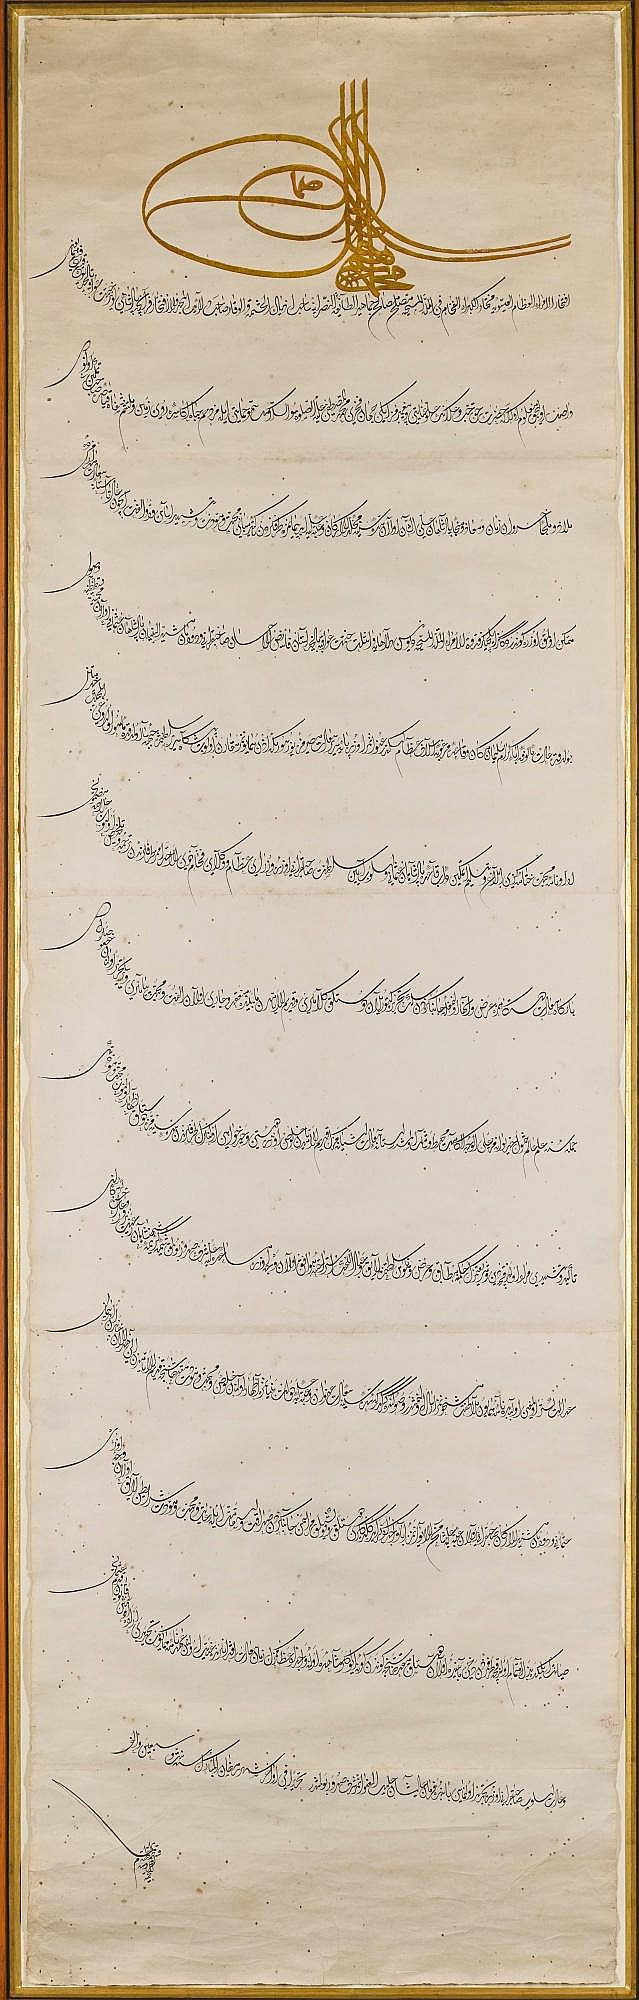 A LARGE ILLUMINATED FIRMAN BEARING THE TUGHRA OF SULTAN MEHMED IV (R.1648-87), TURKEY, OTTOMAN, ISTANBUL, DATED 1076 AH/1666 AD |